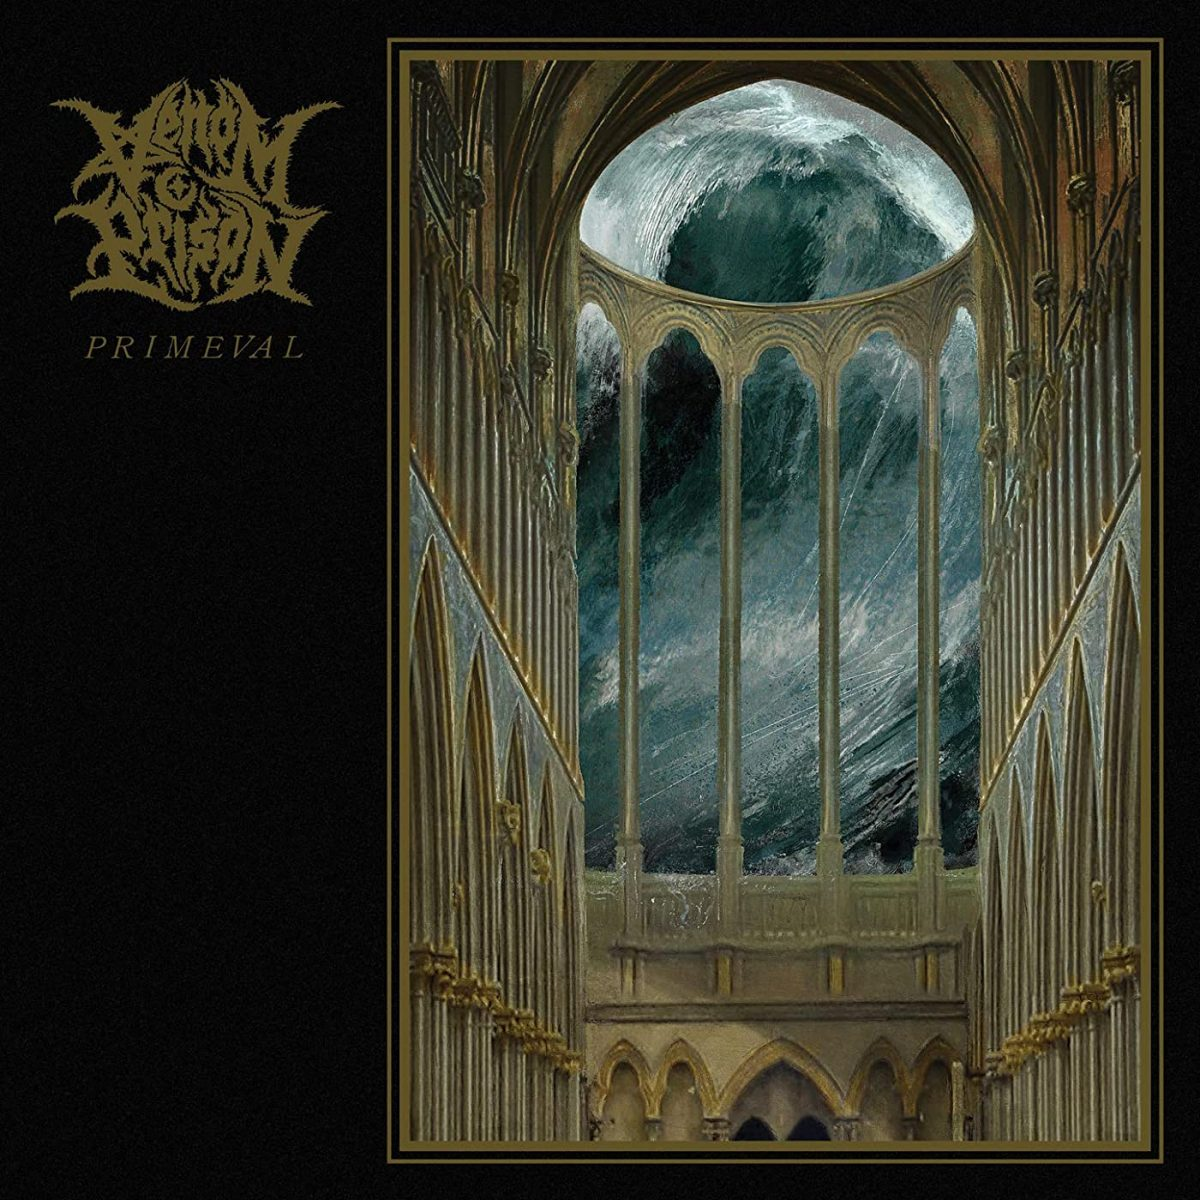 venom-prison-primeval-album-review